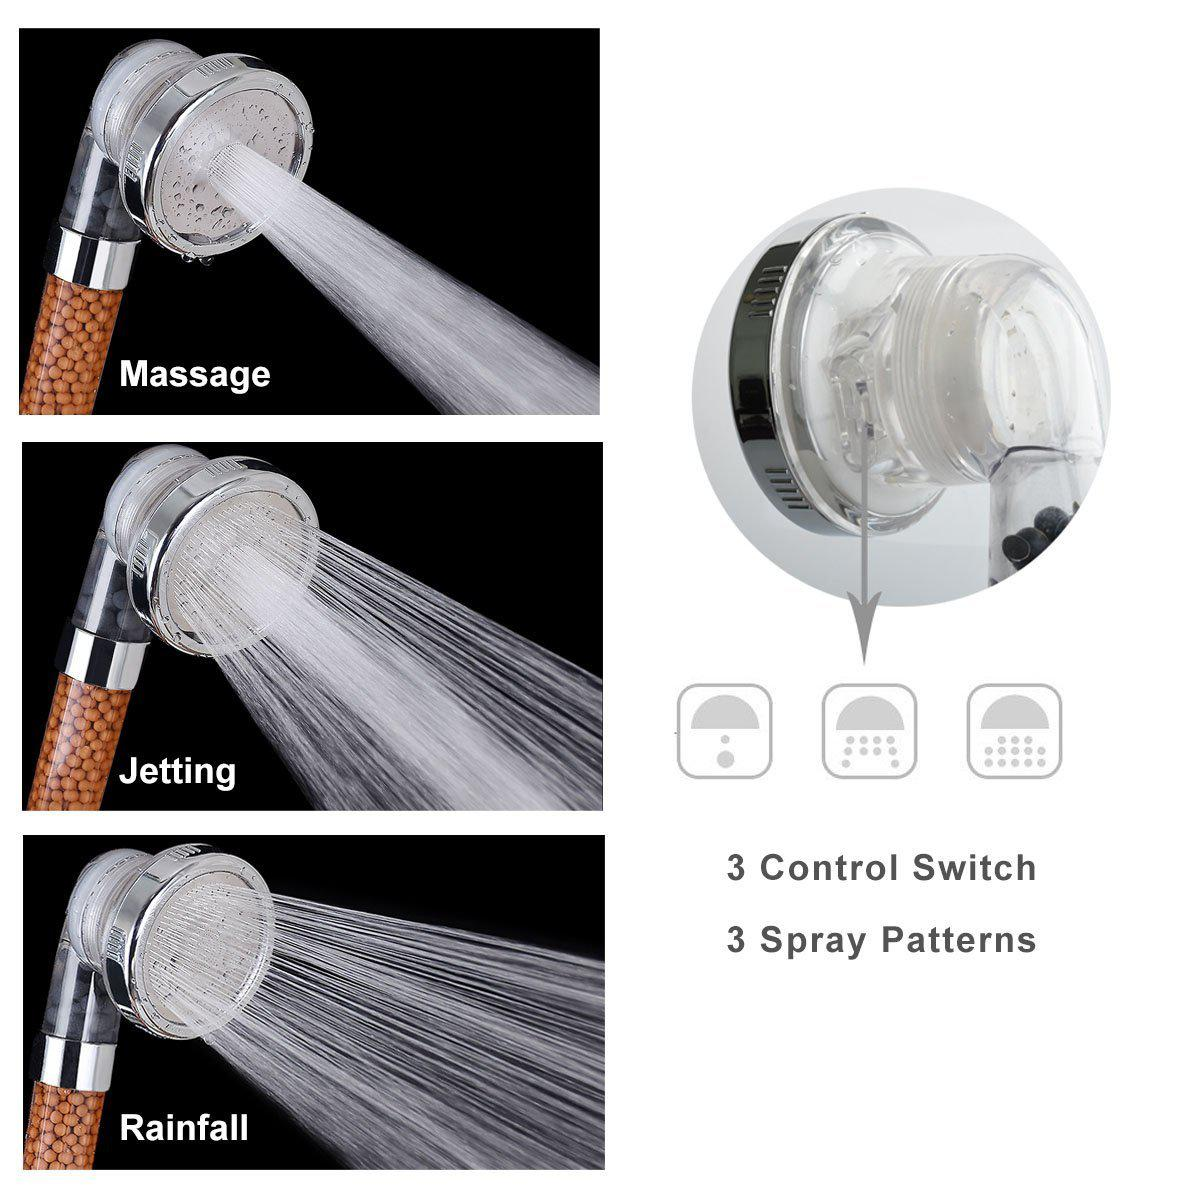 Misugi™ - 3 Mode High Pressure Shower Bath Head - Awesales